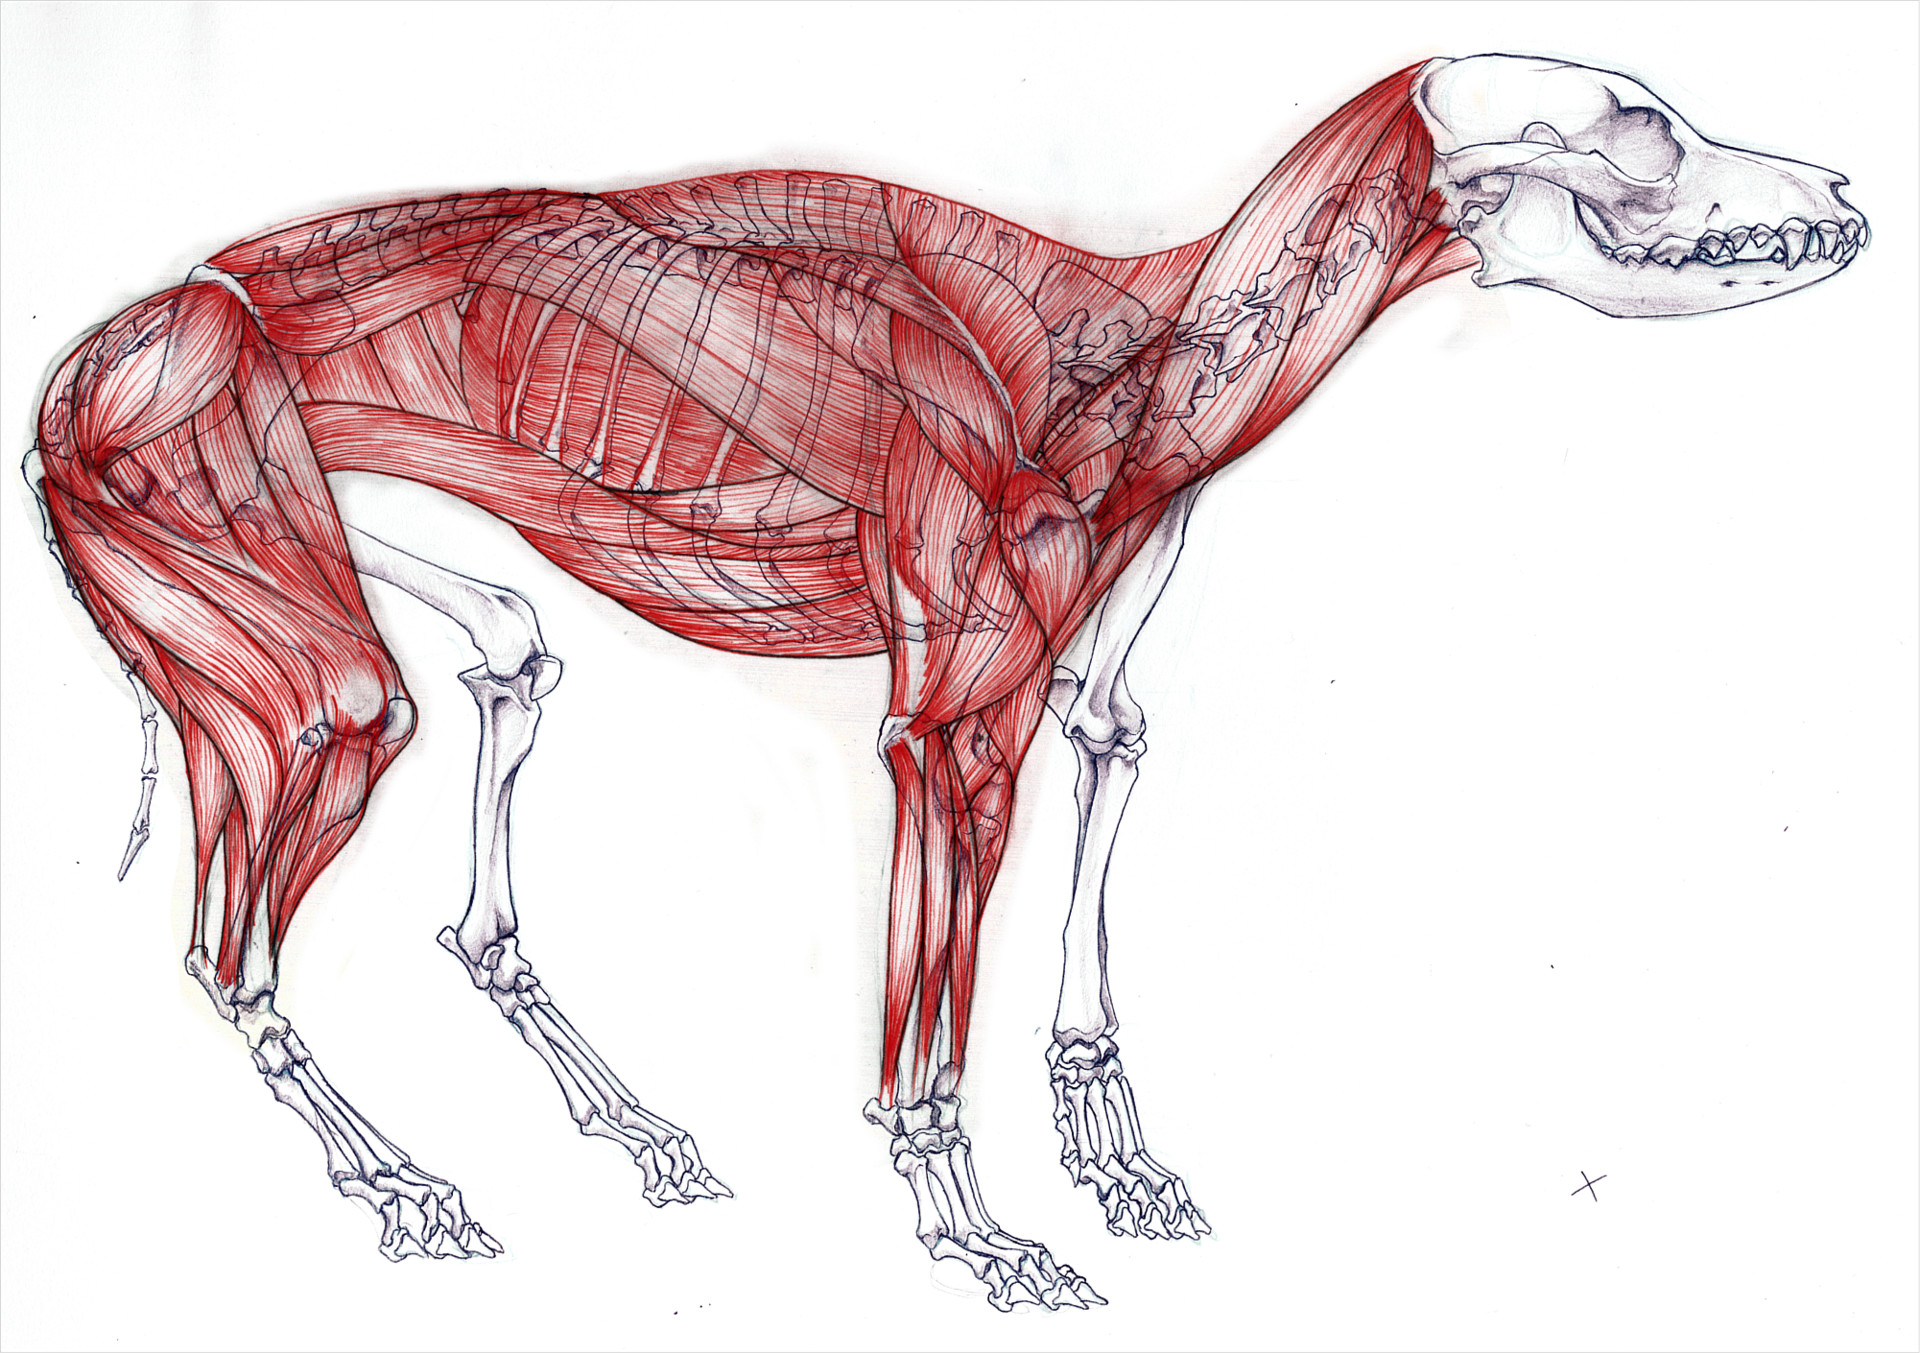 Chris Guo - Anatomy study - Dog